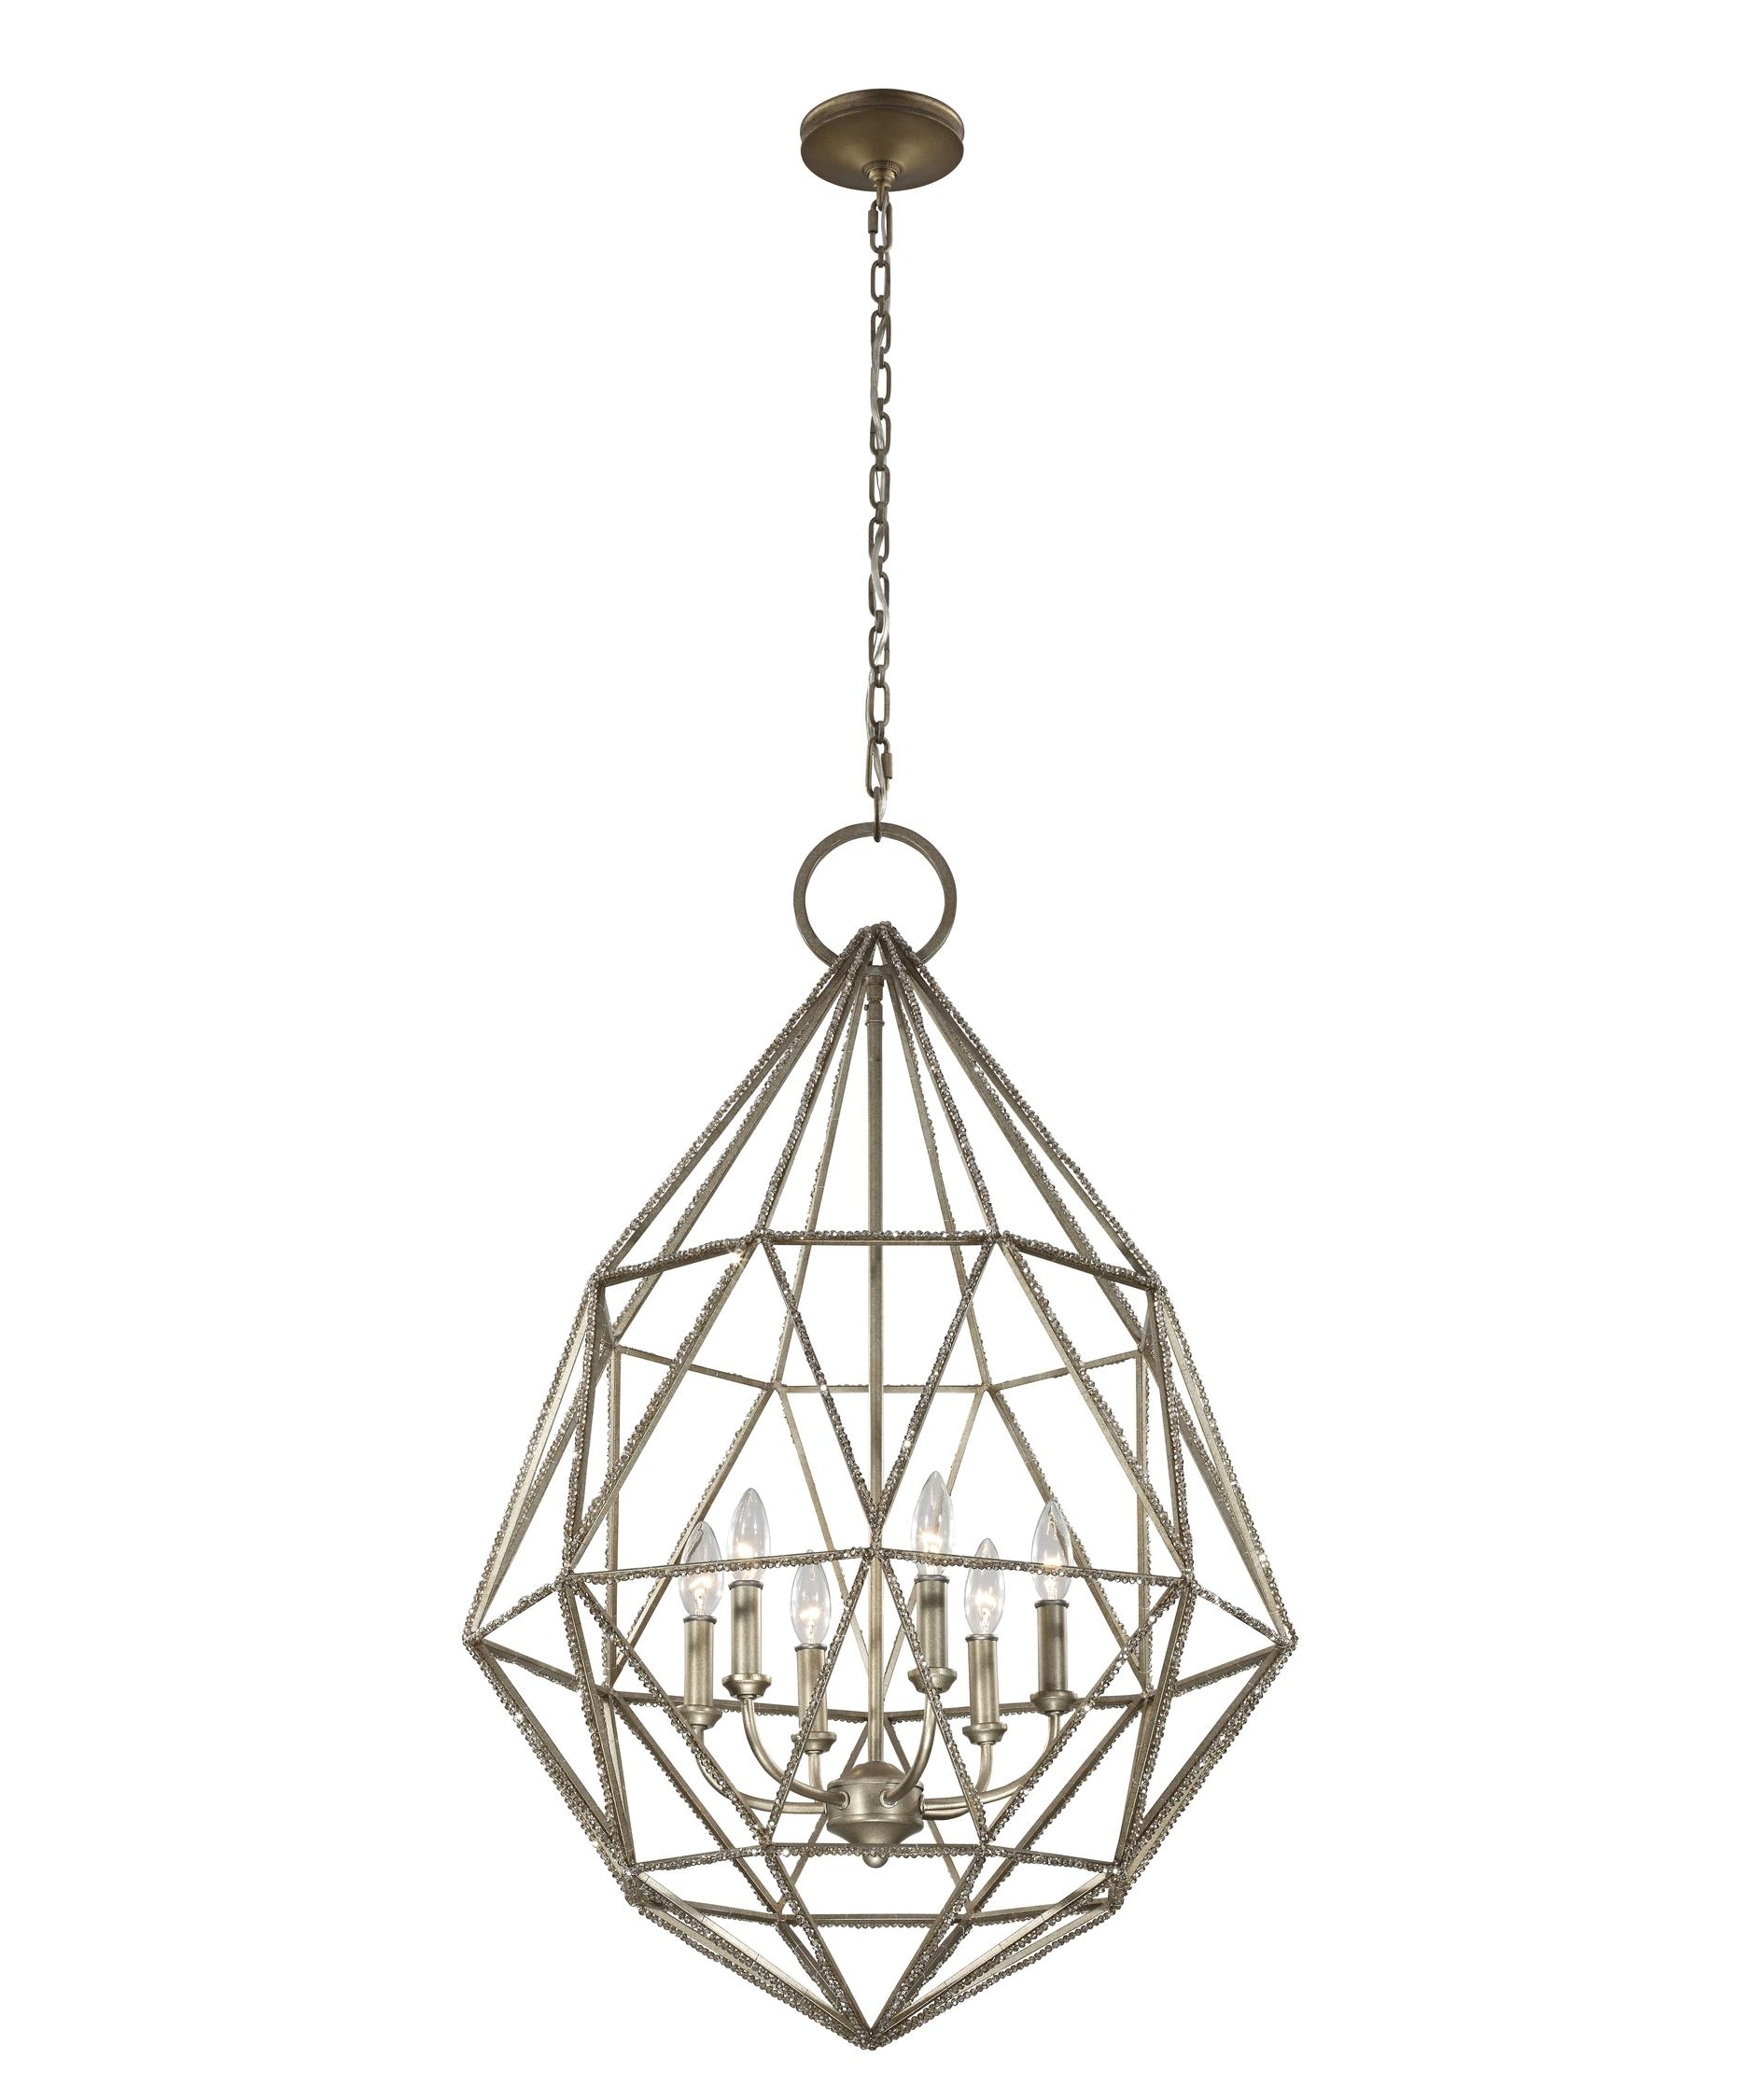 Popular Murray Feiss F2942 6 Marquise 25 Inch Wide 6 Light Chandelier Throughout Feiss Chandeliers (View 3 of 20)